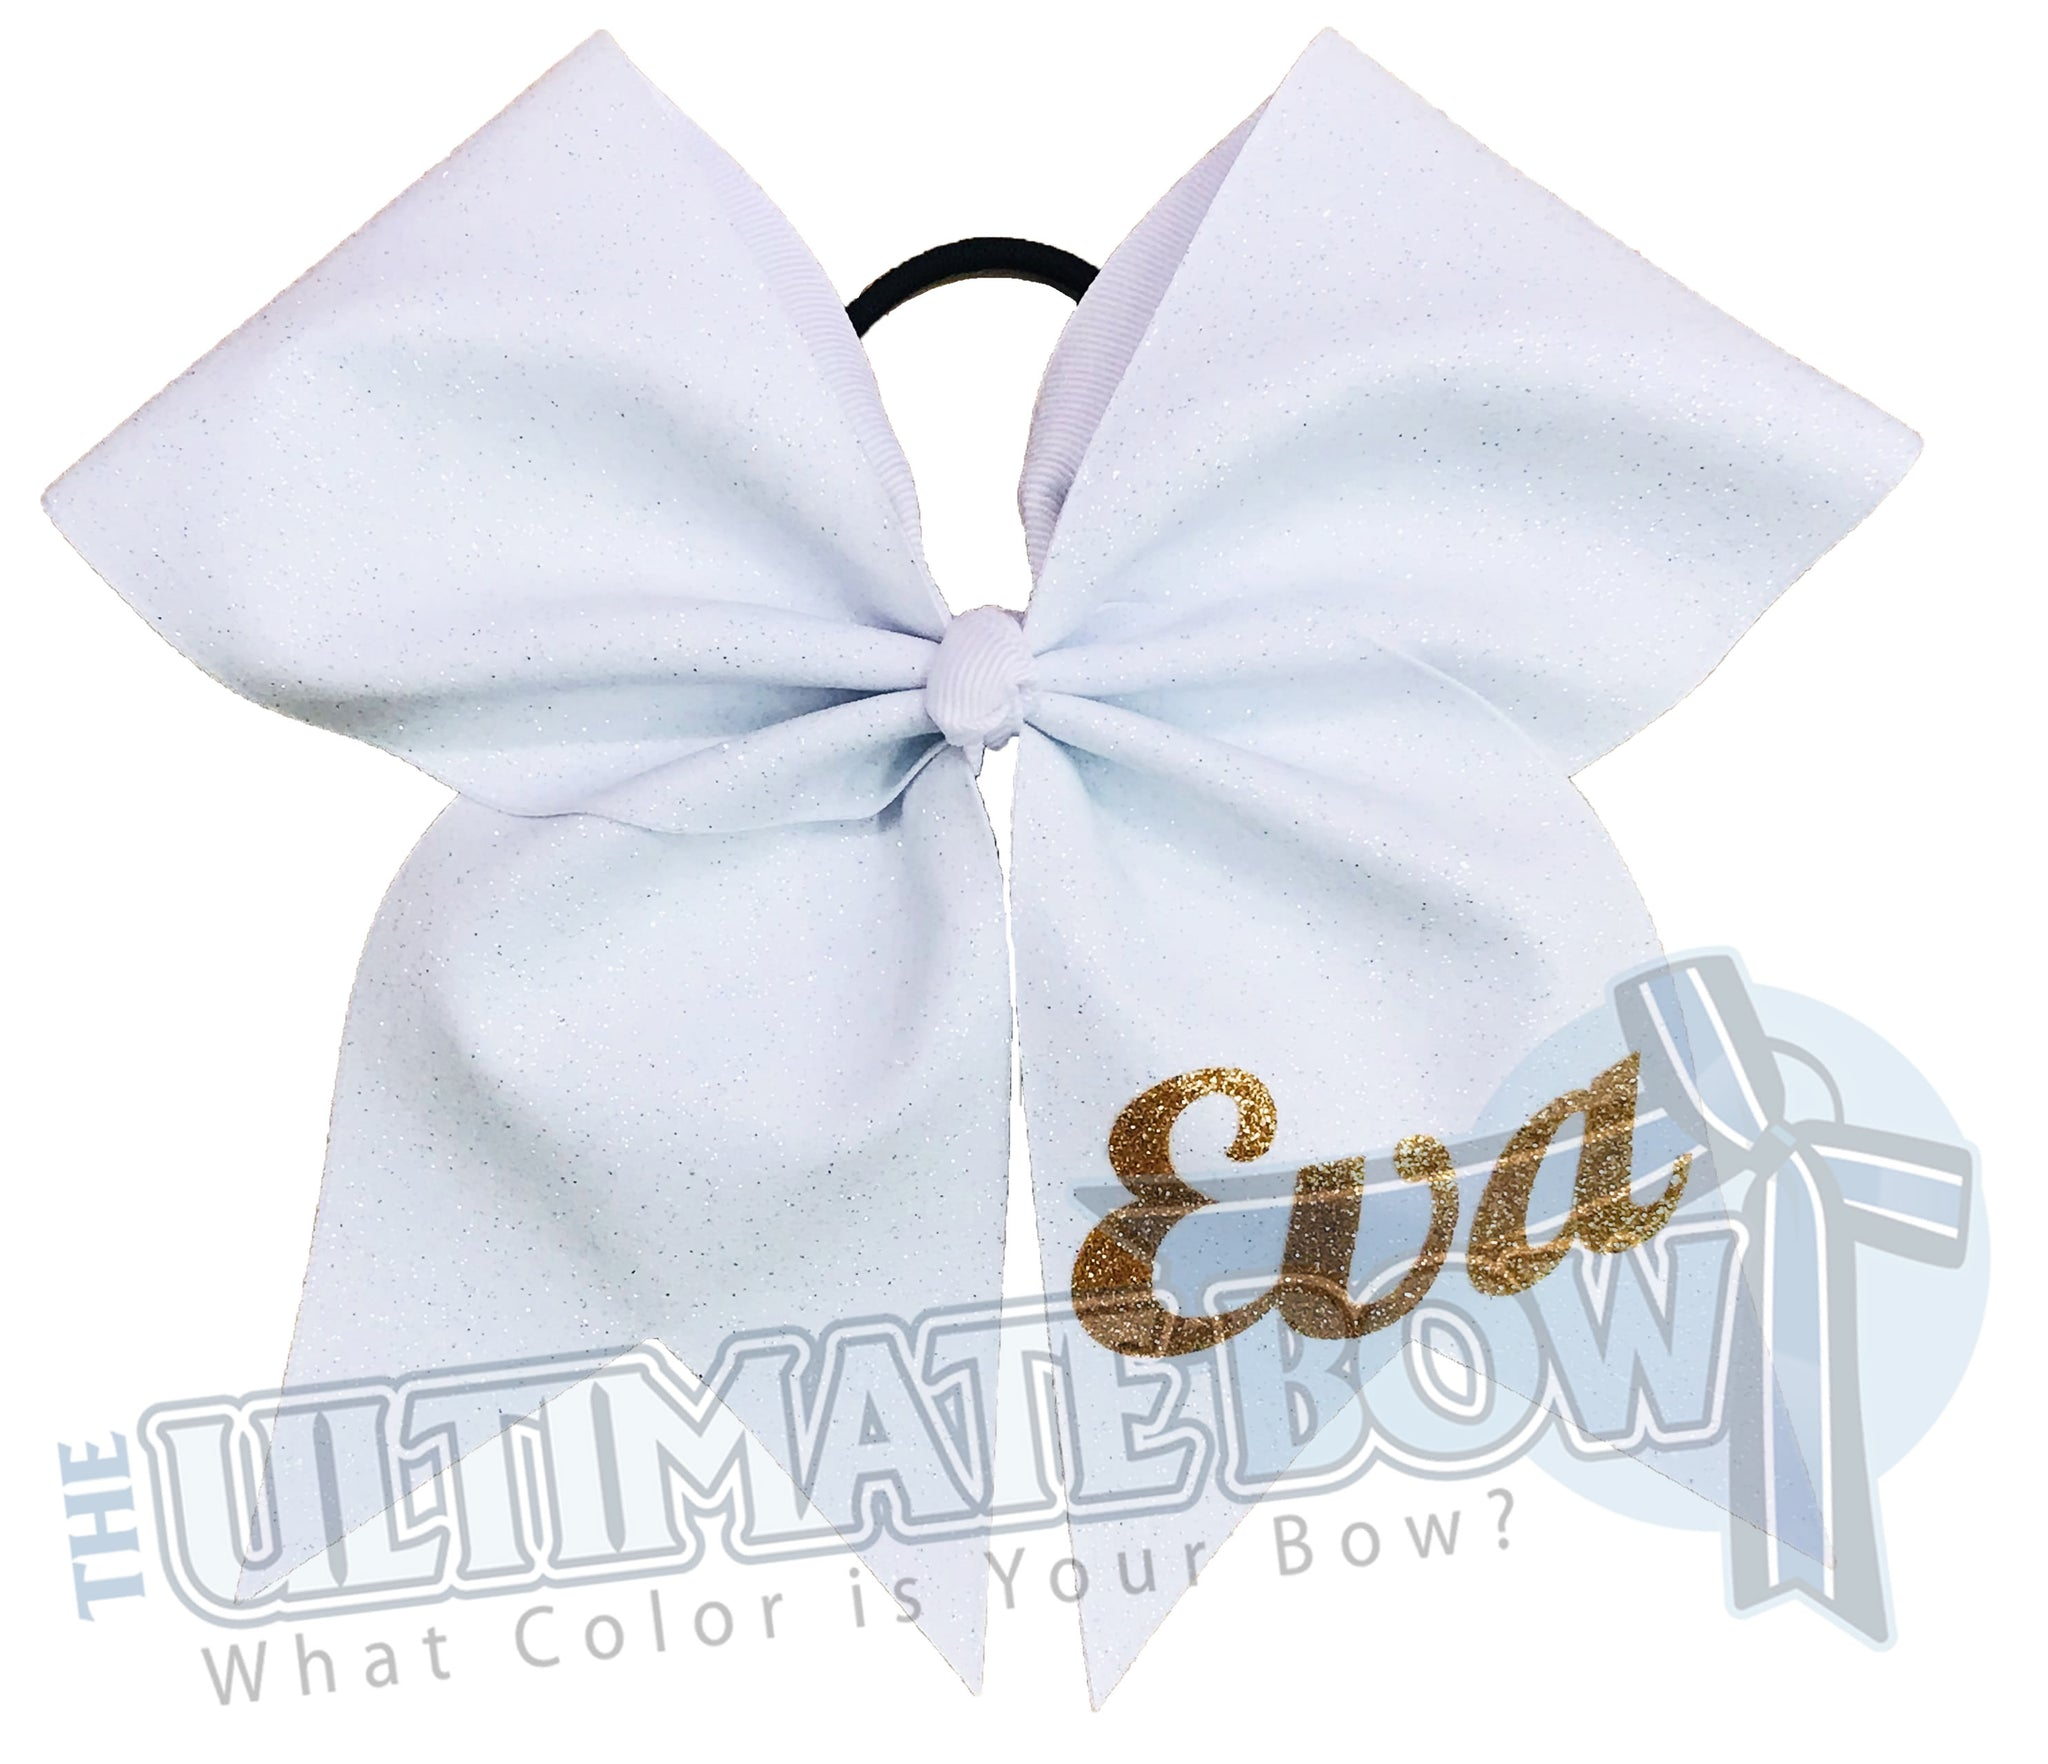 My Superior Glitter Bow | Personalized Glitter Cheer Bow | White and Gold Cheer Bow | Name on Cheer Bow